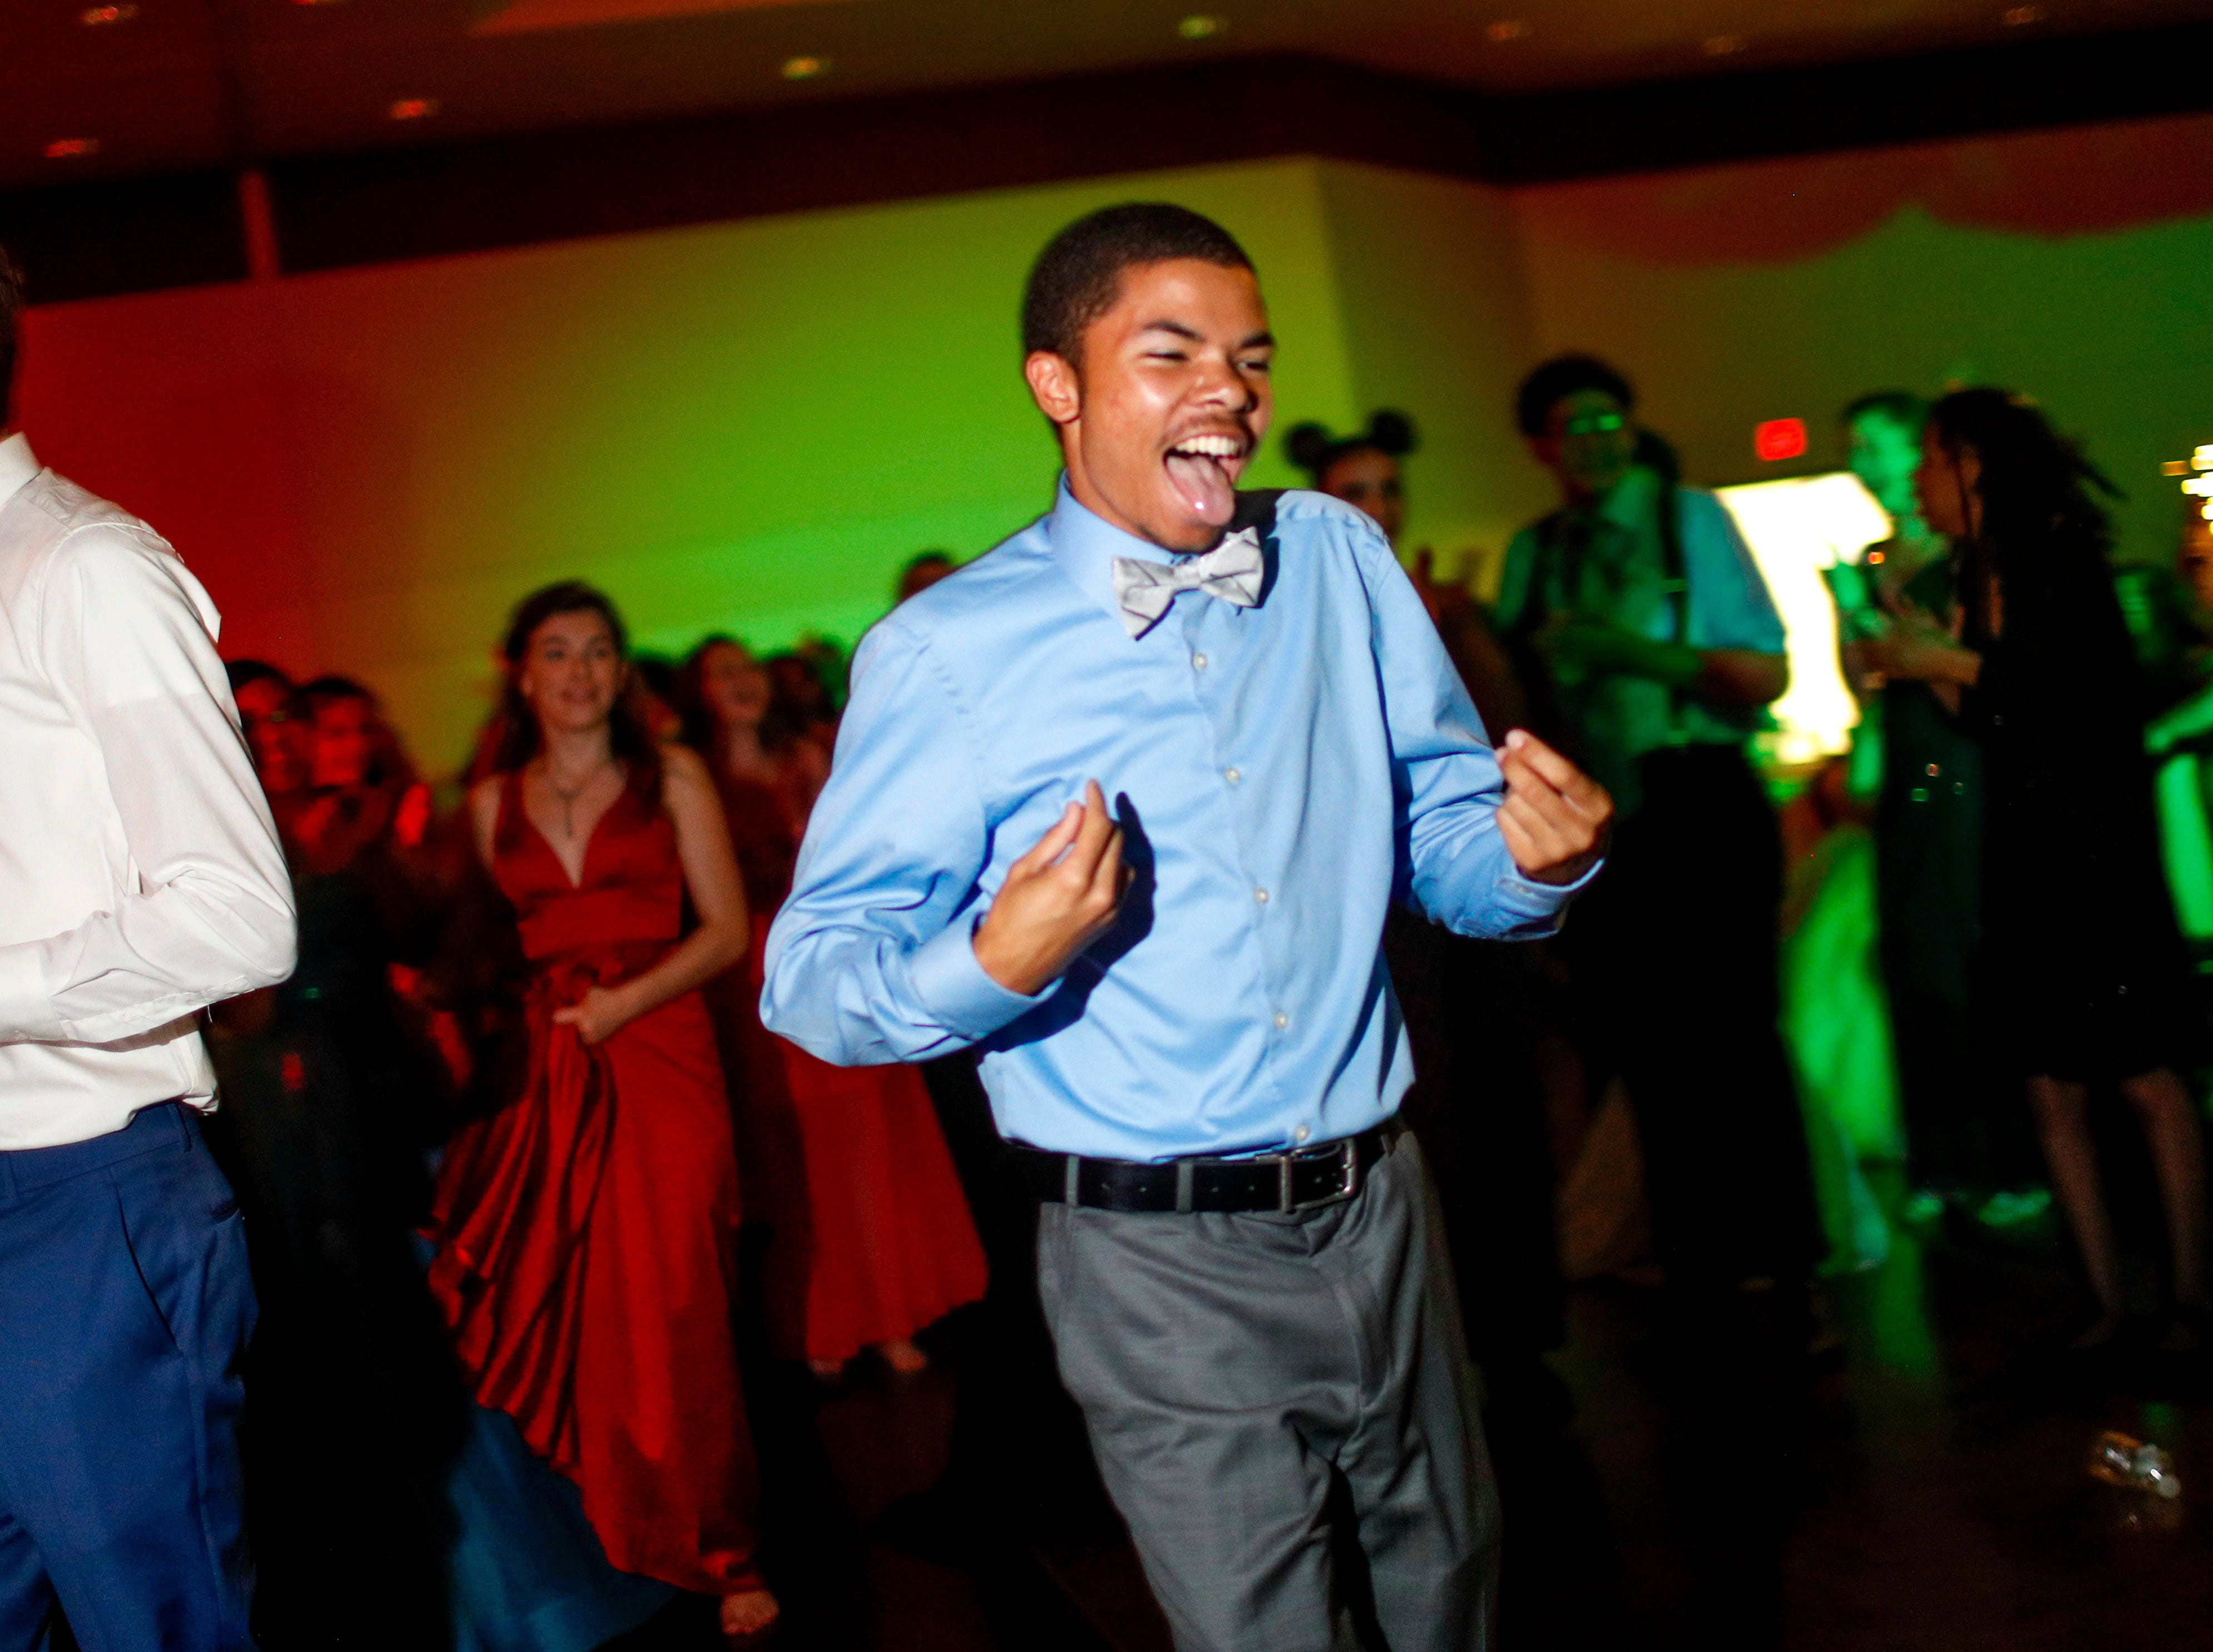 """Dionte Berry dances triumphantly to the front of the dance floor after being named Prom King at Fort Campbell High School's 2019 prom themed """"A Night in Athens"""" at Valor Hall in Oak Grove, KY., on Saturday, April 20, 2019."""